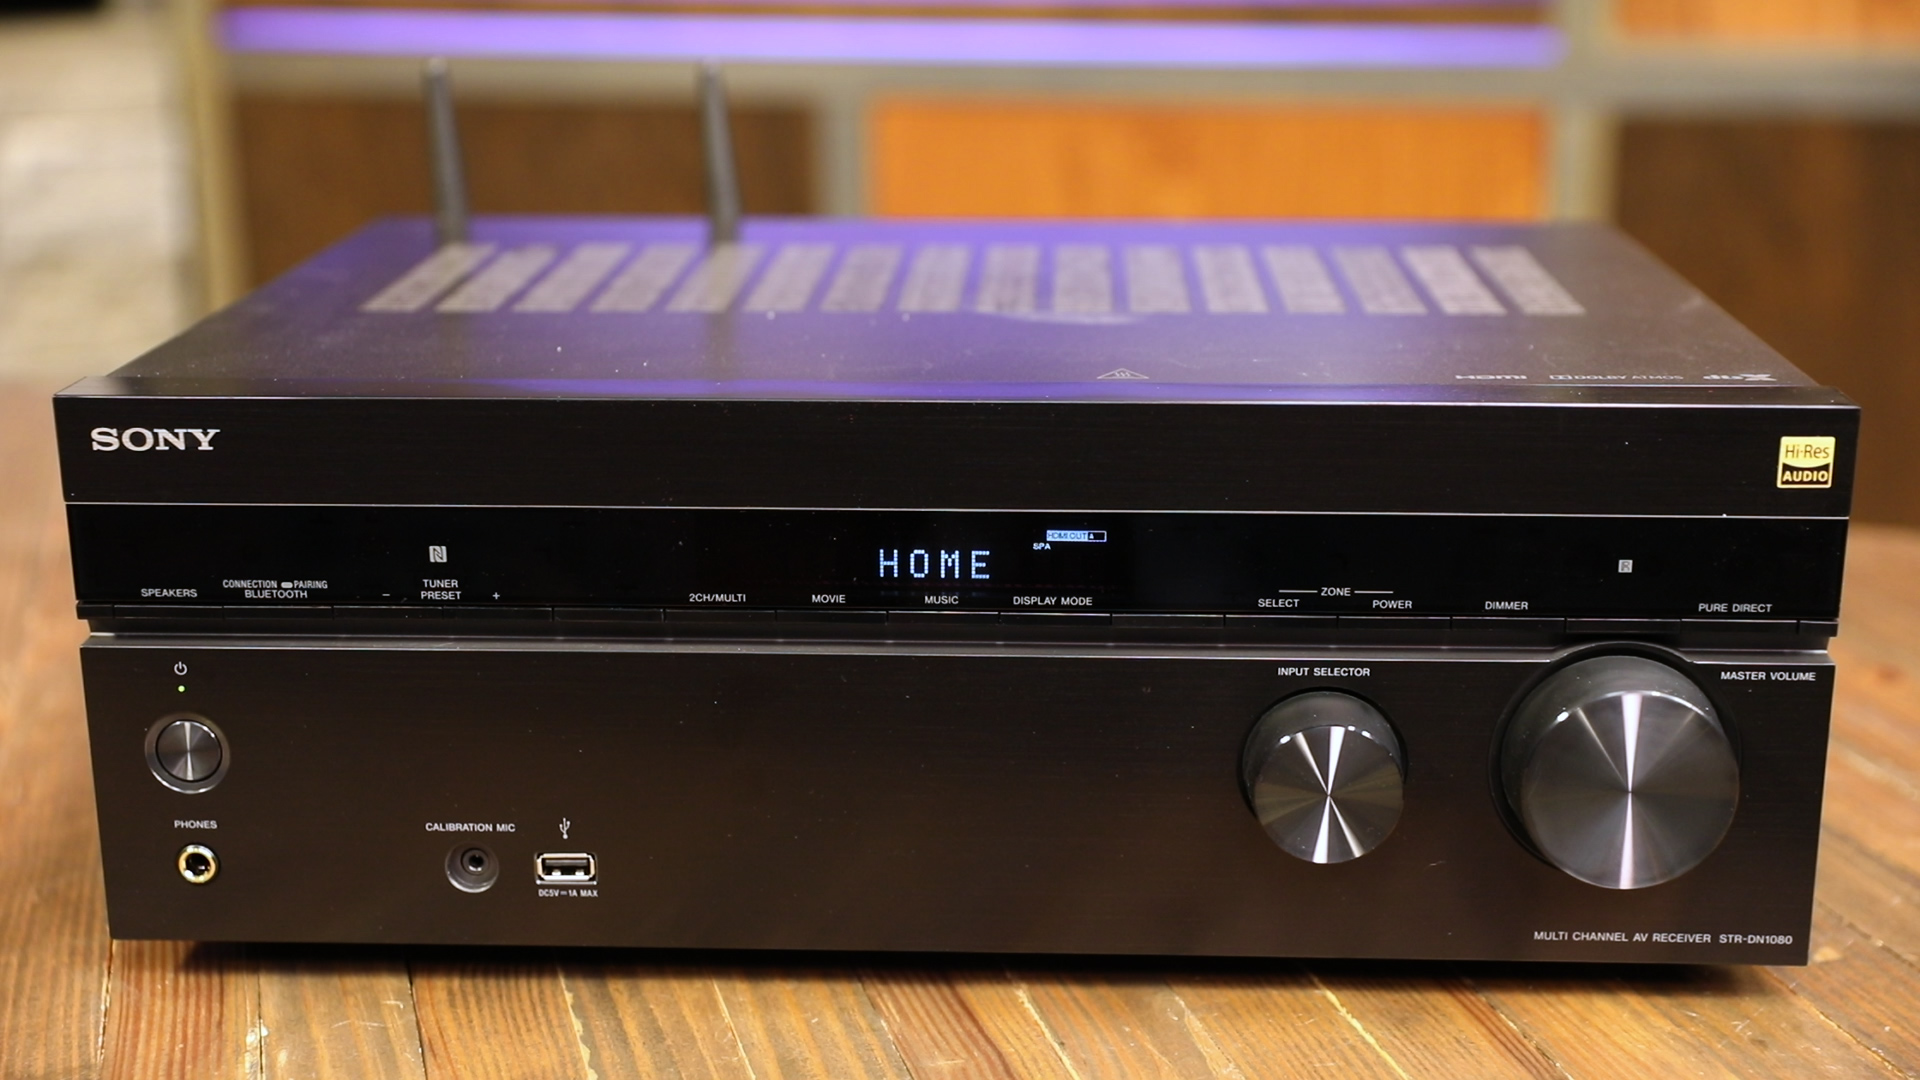 Video: Sony's STR-DN1080 receiver is a knockout